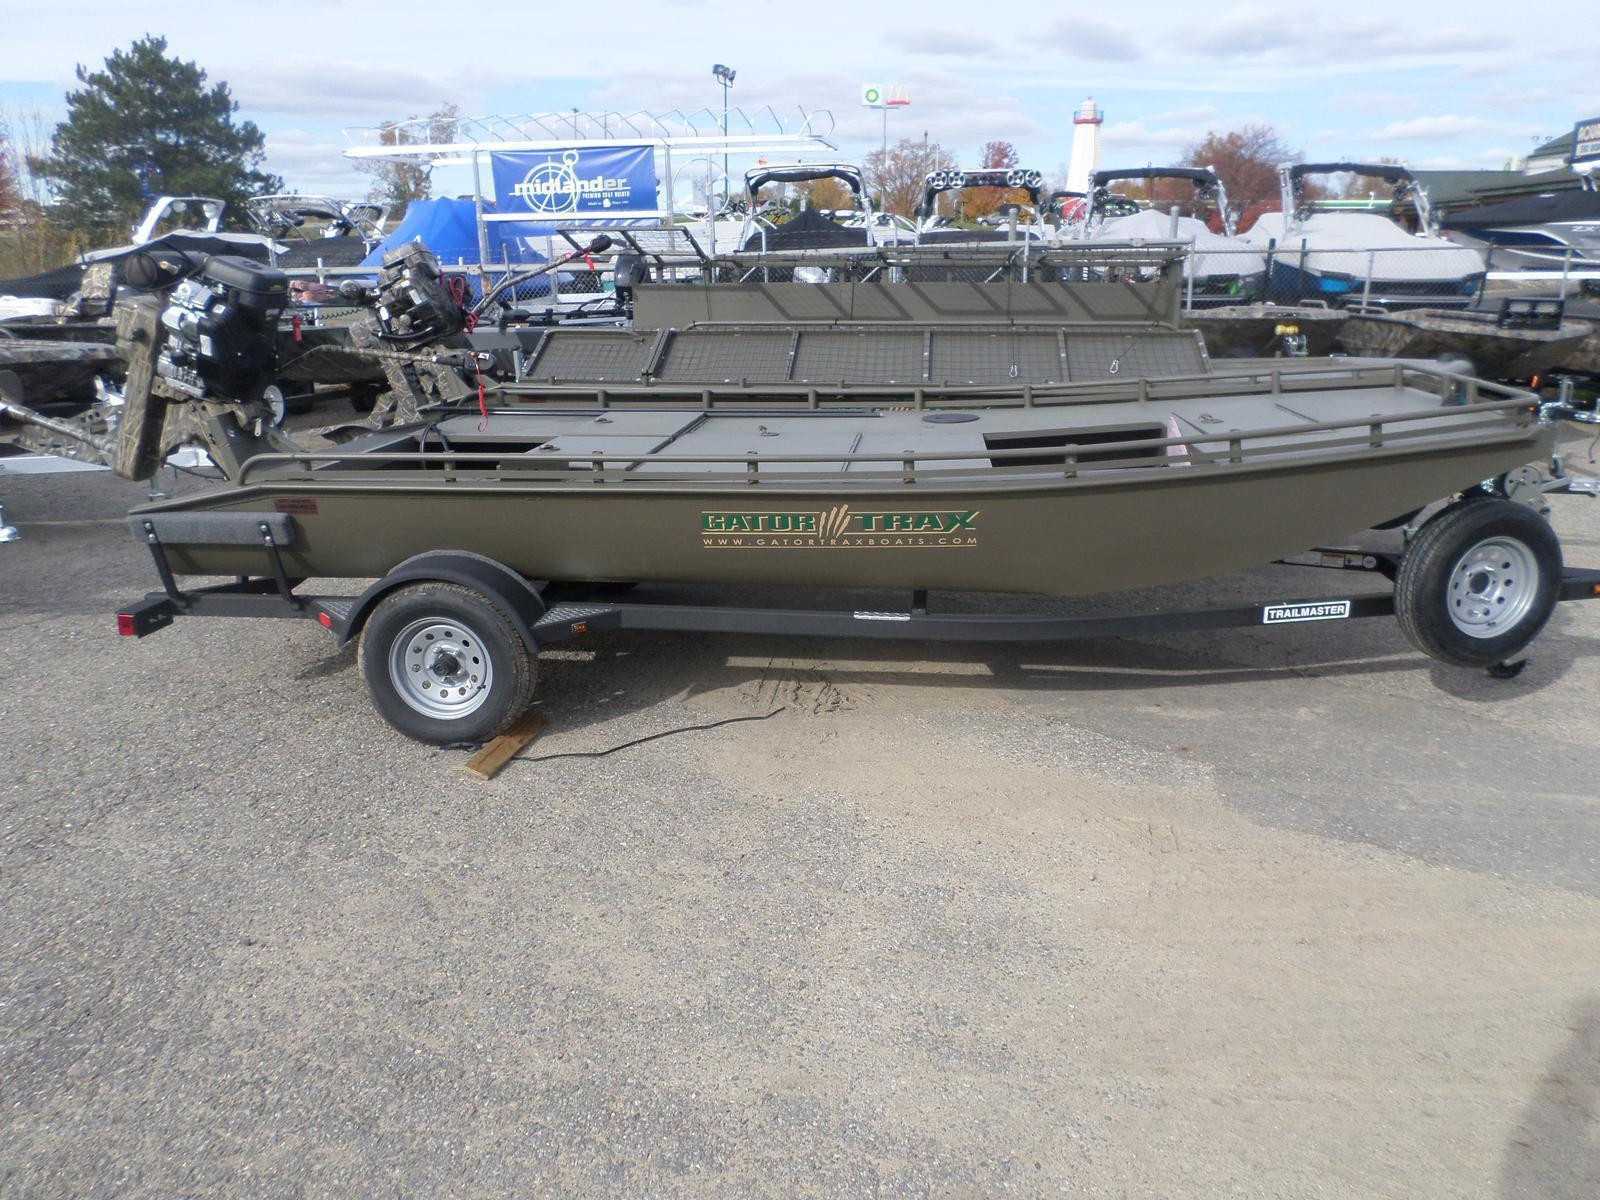 Gator Trax boats for sale - Boat Trader